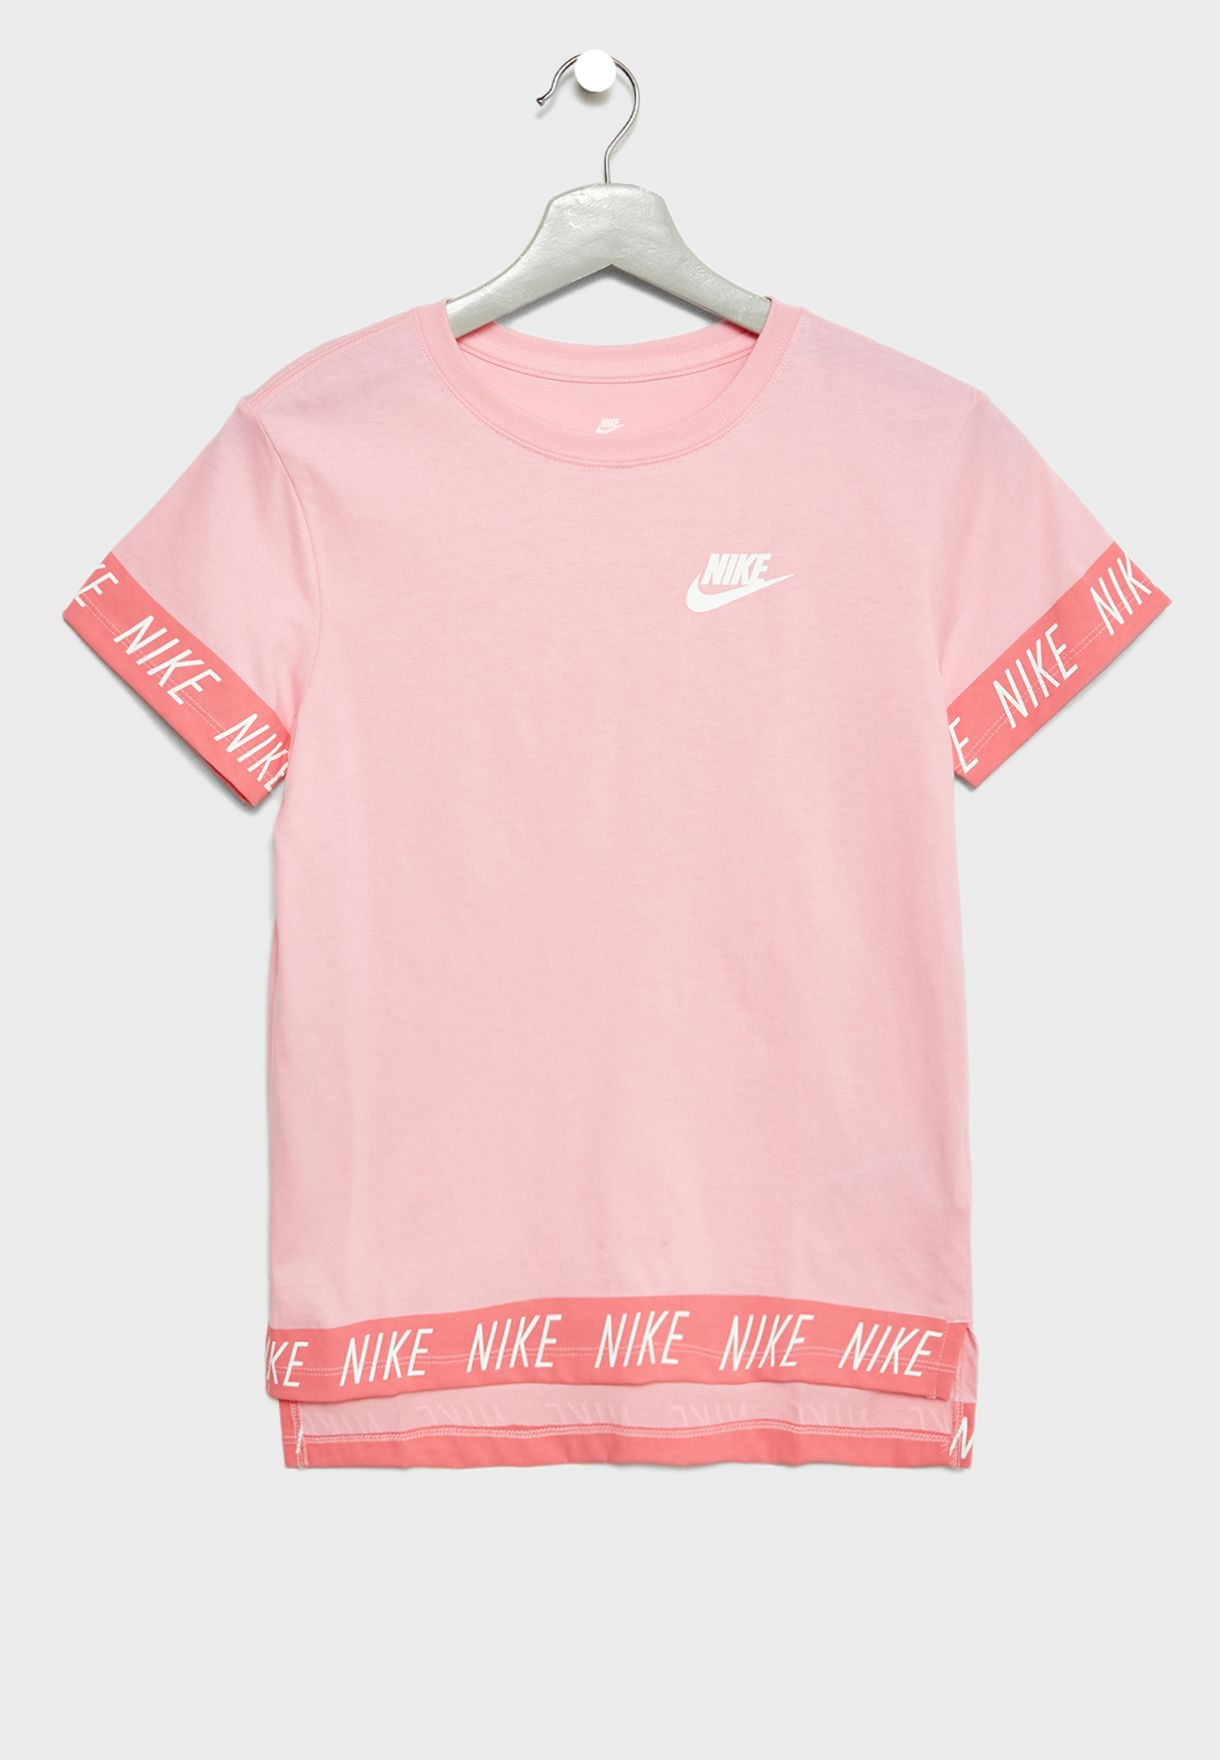 e0015f03 Shop Nike pink Youth Hilo T-Shirt 923632-654 for Kids in Saudi ...